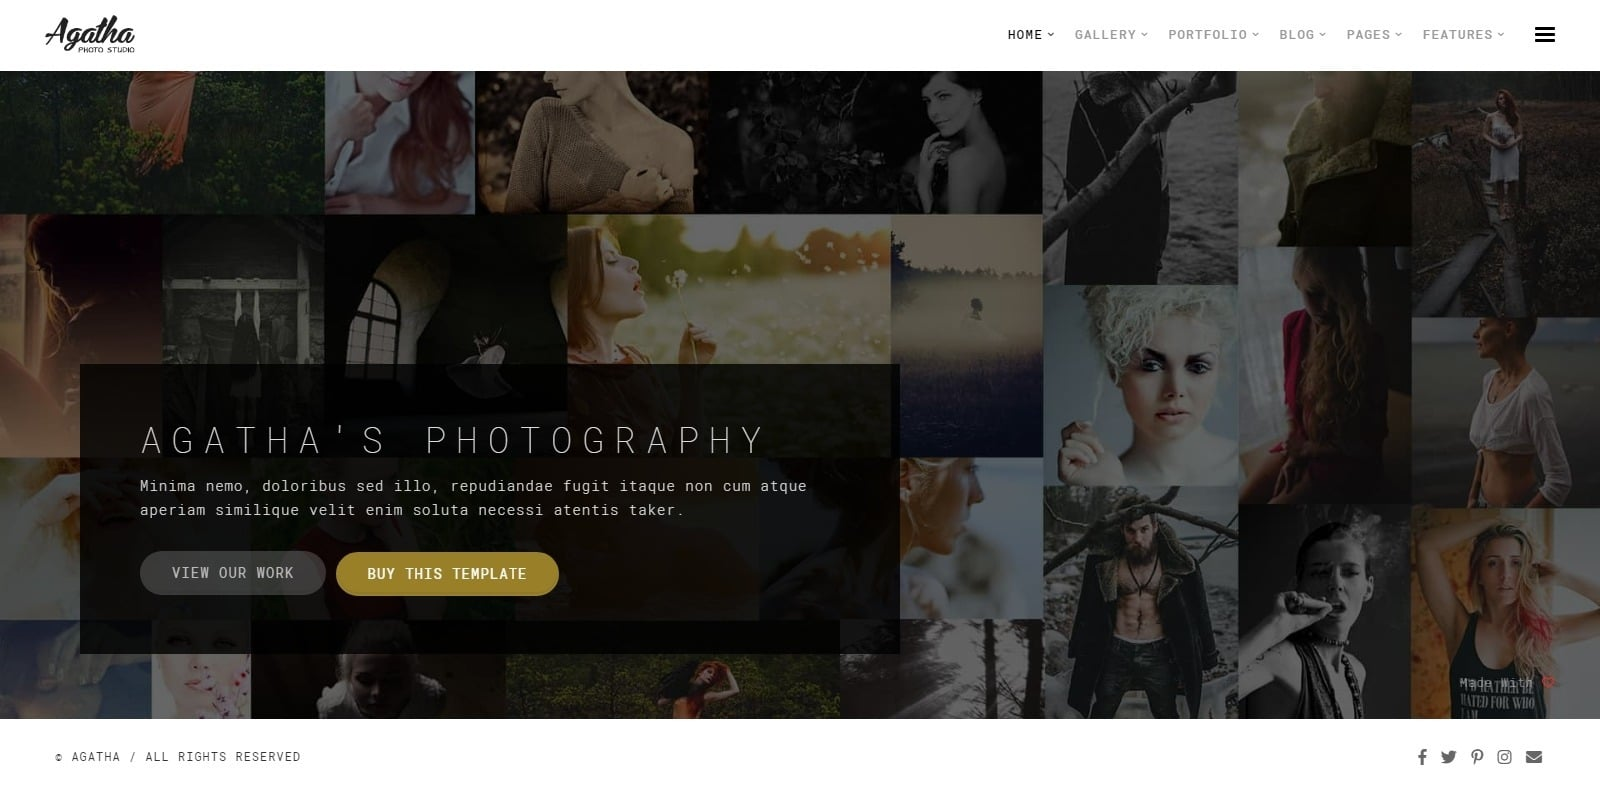 agatha-gallery-website-template